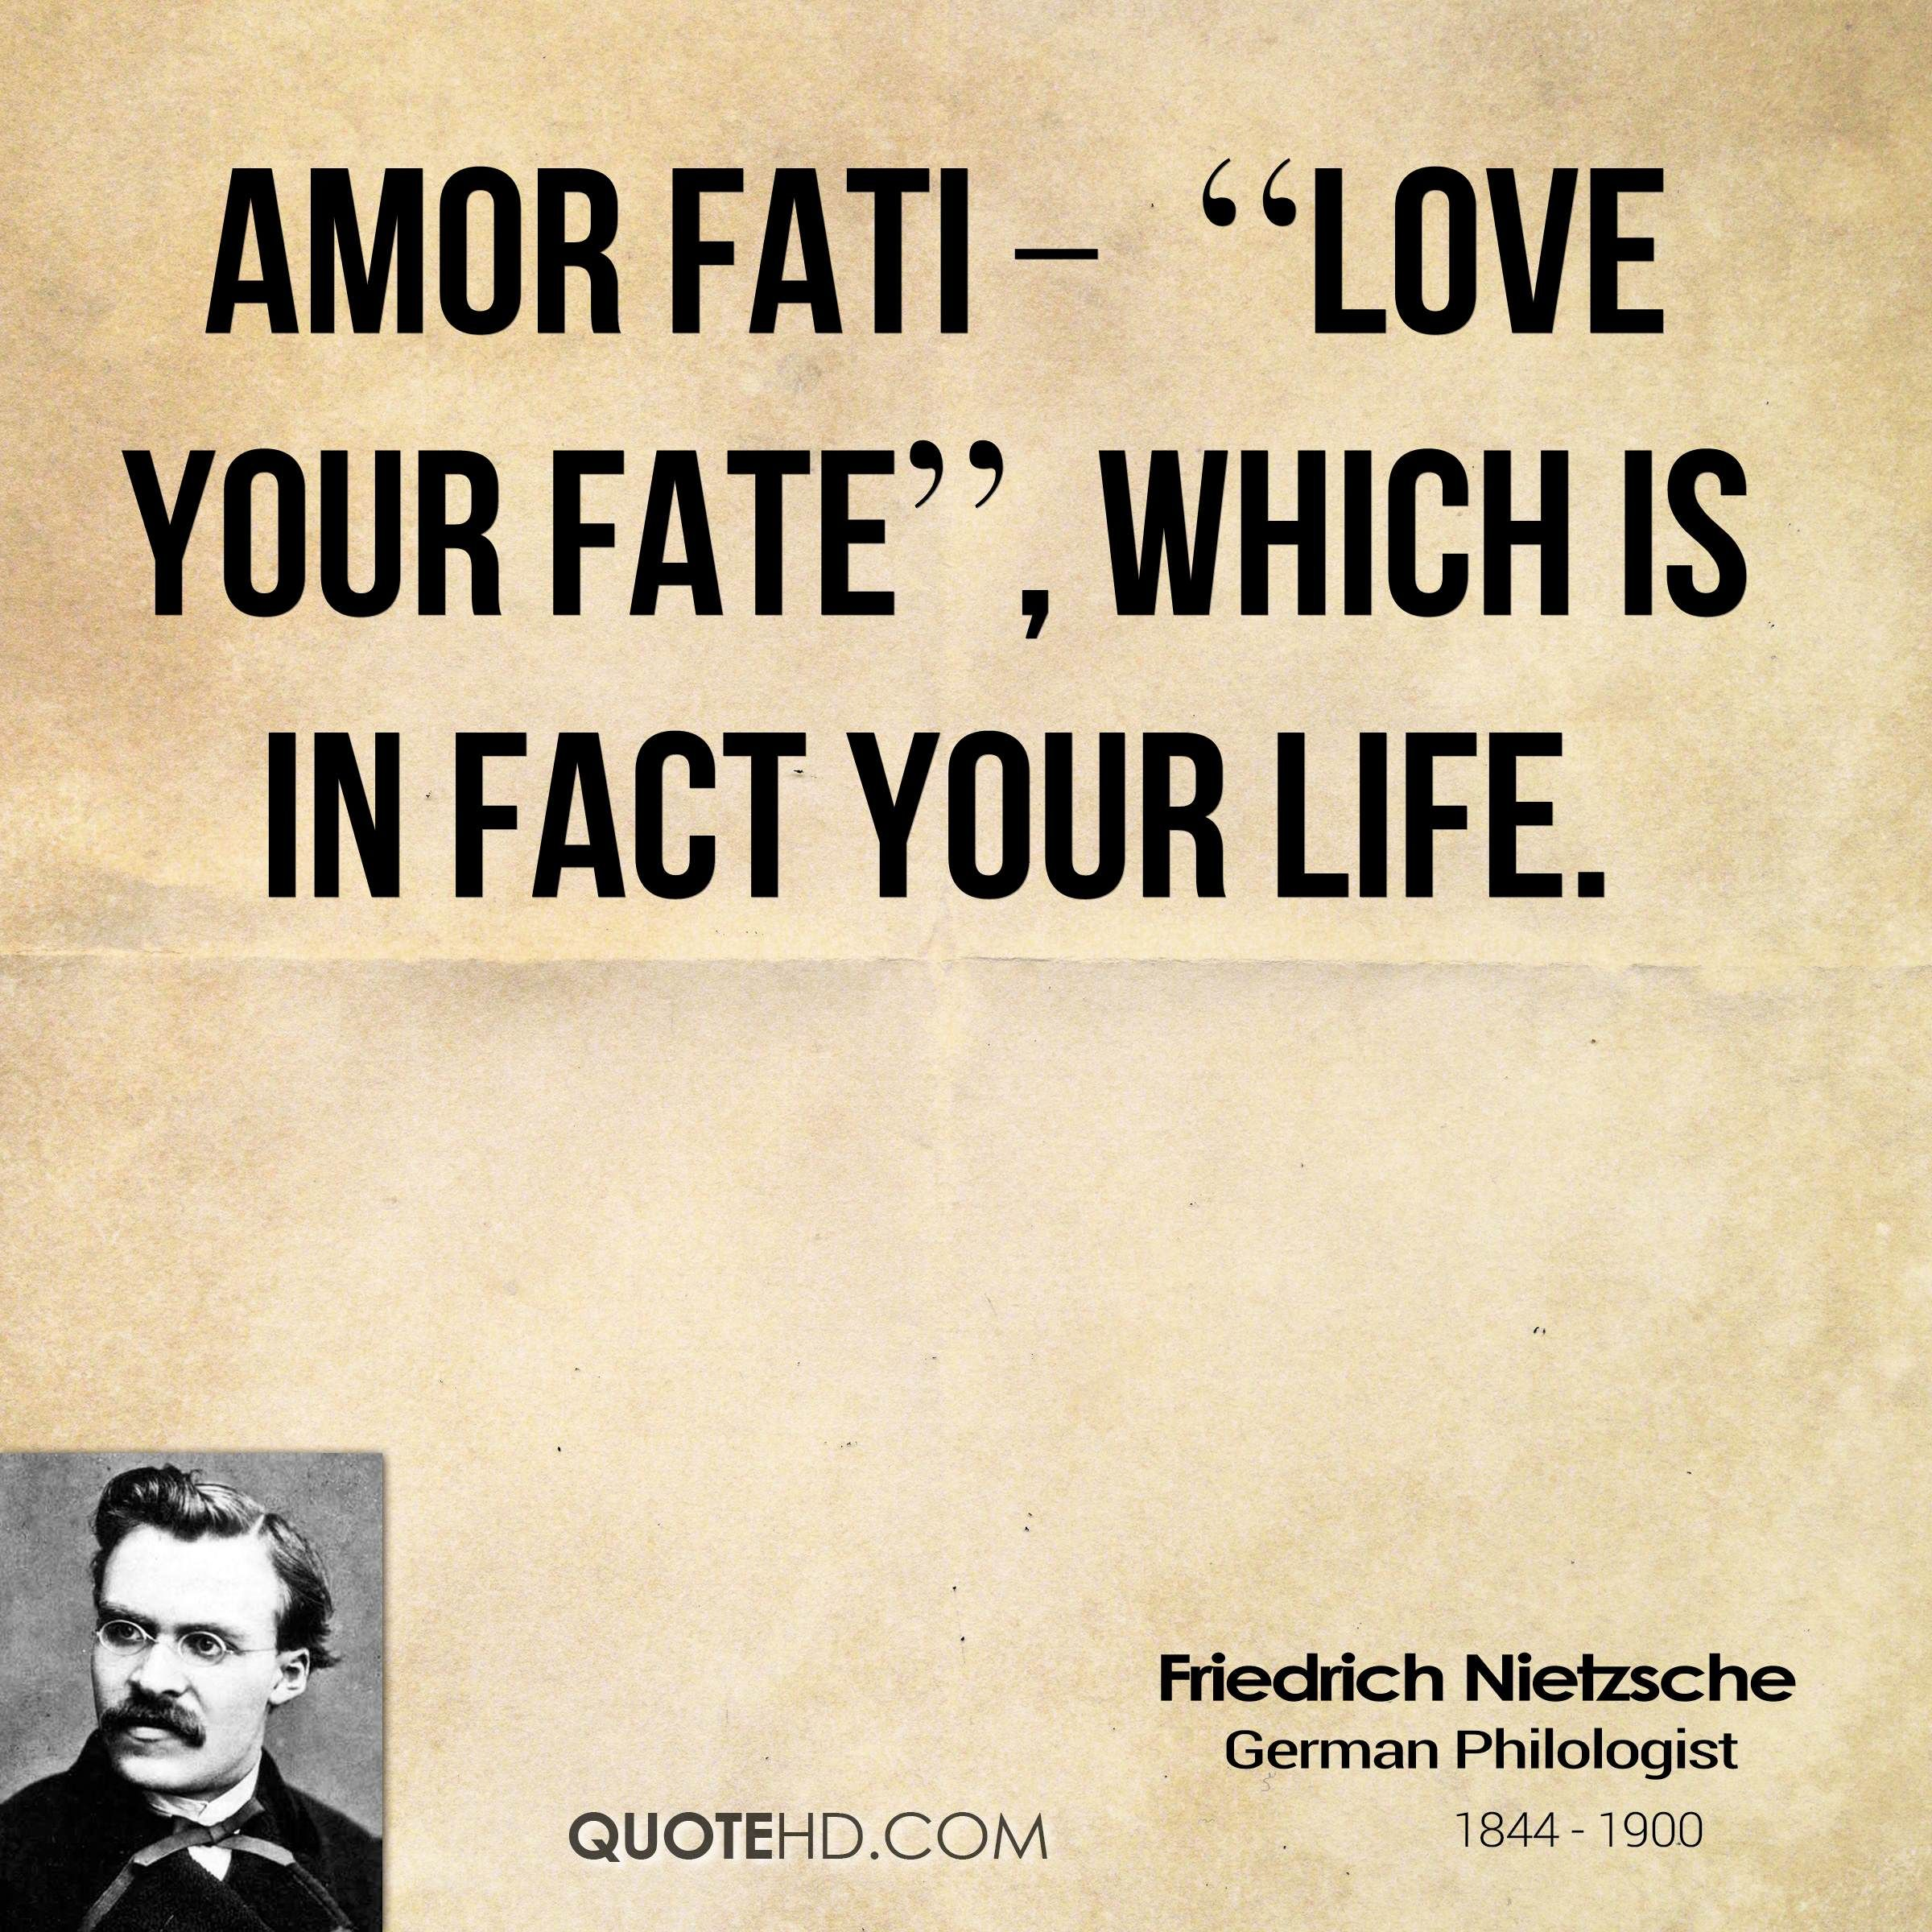 Nietzsche Quotes Amor Fati Love Your Fate Which Is In Fact Your